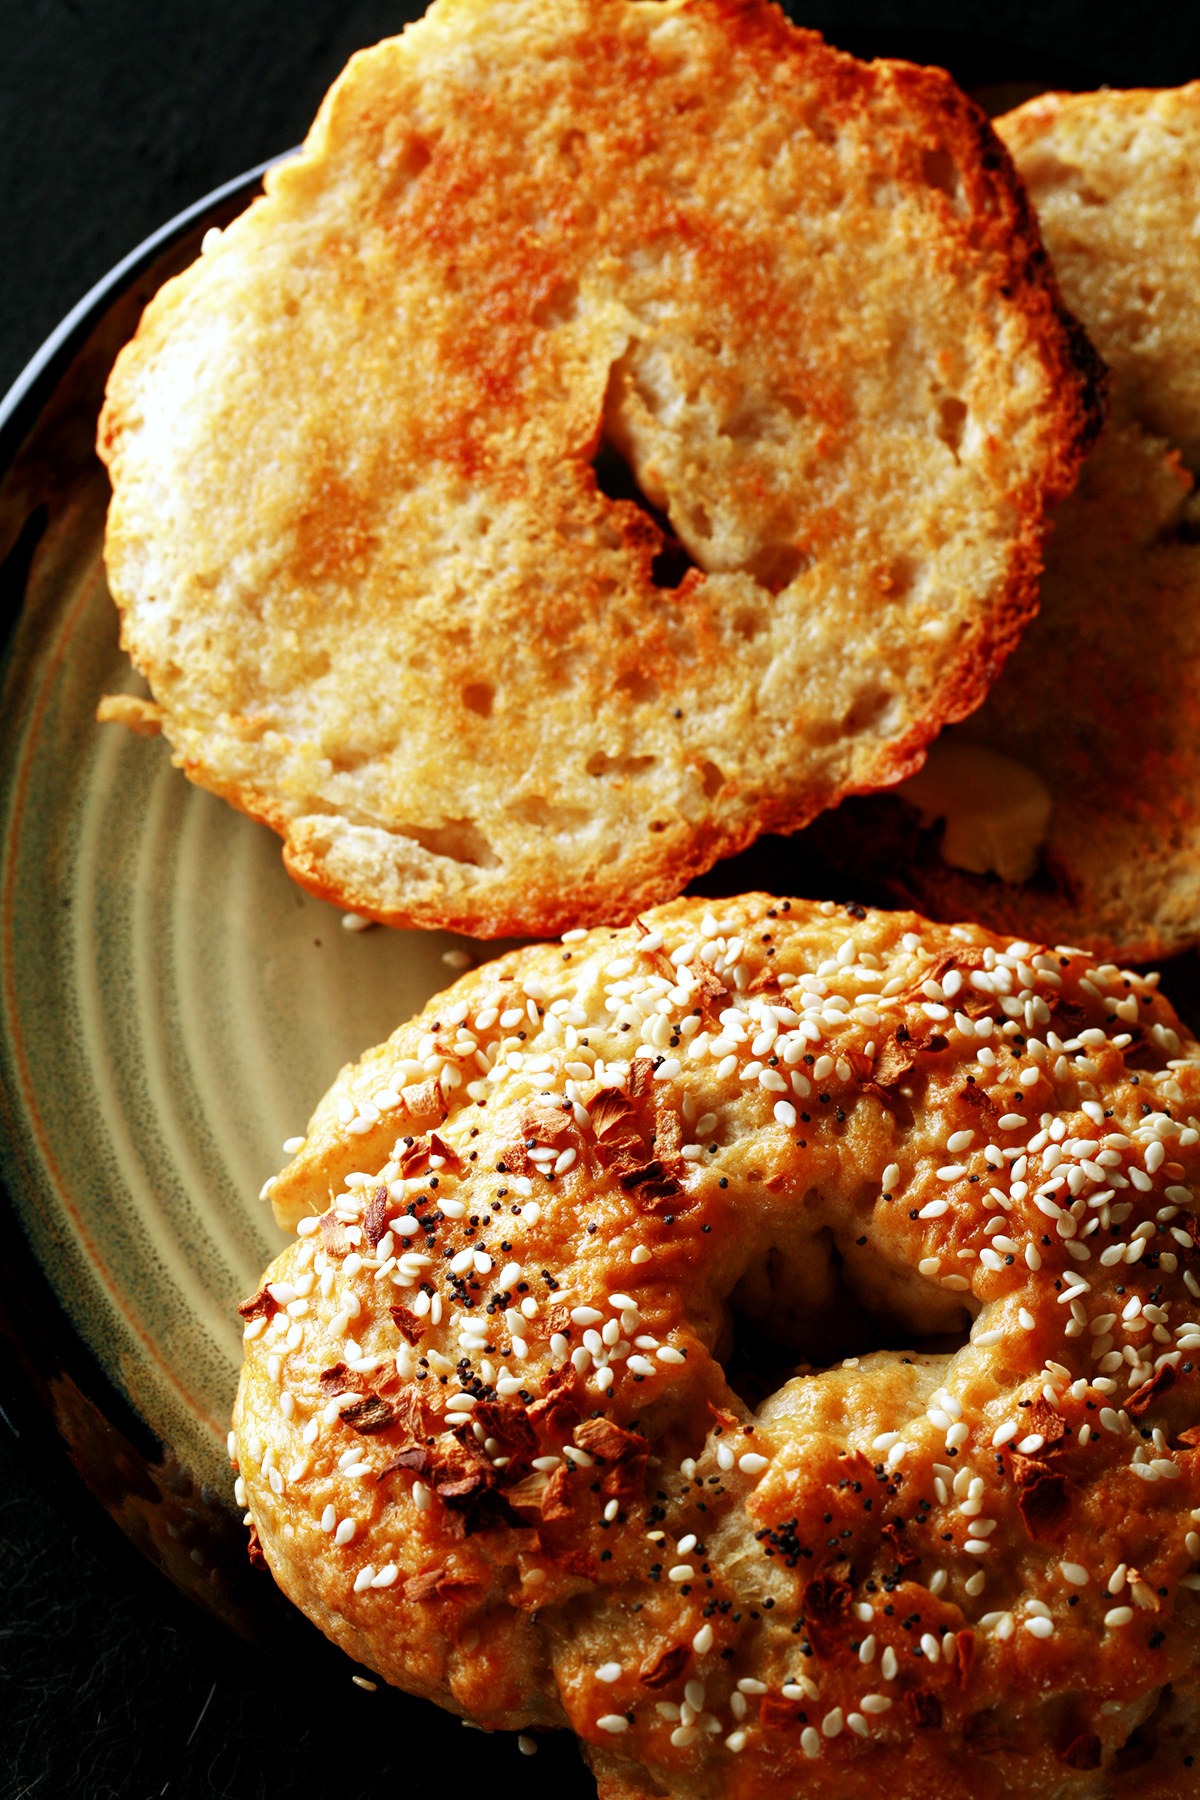 A close up view of two toasted gluten-free bagels on a plate. One is coated with everything seasoning.